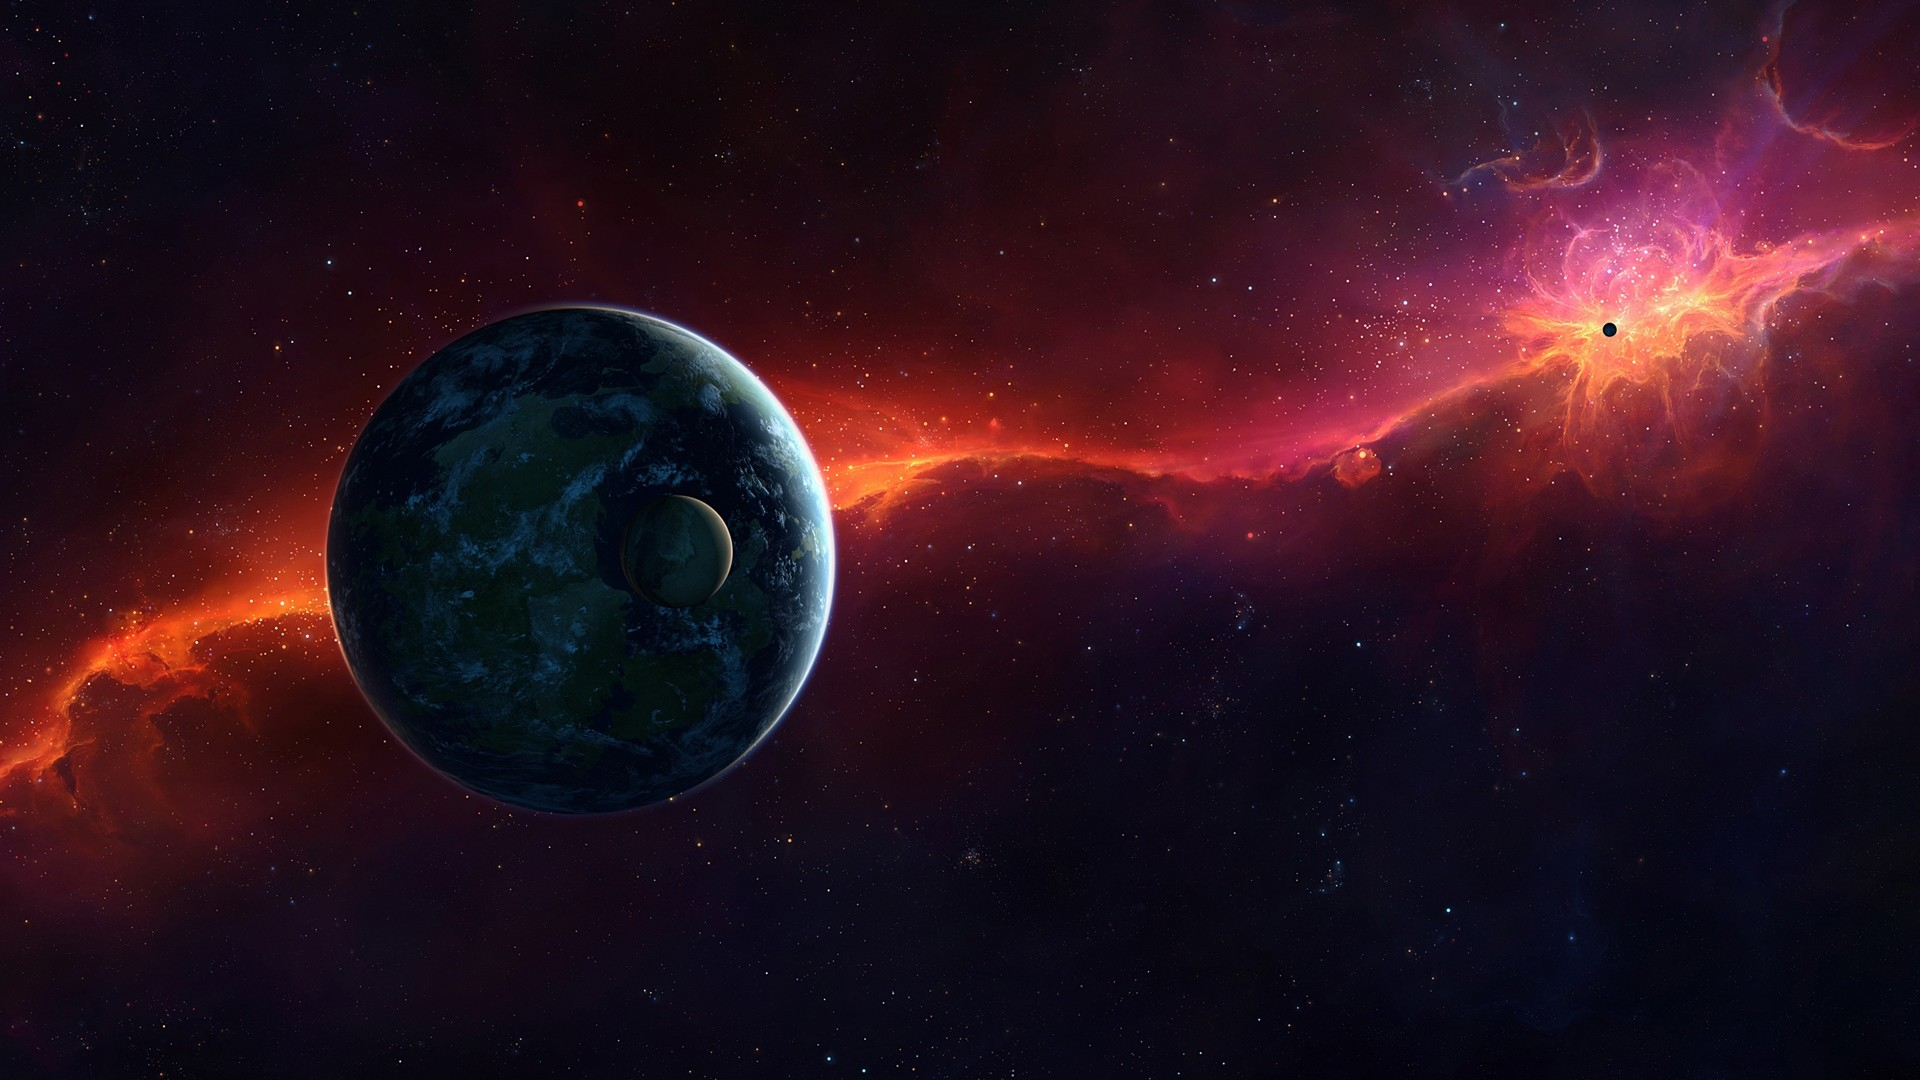 69 Outer Space Wallpaper Planets